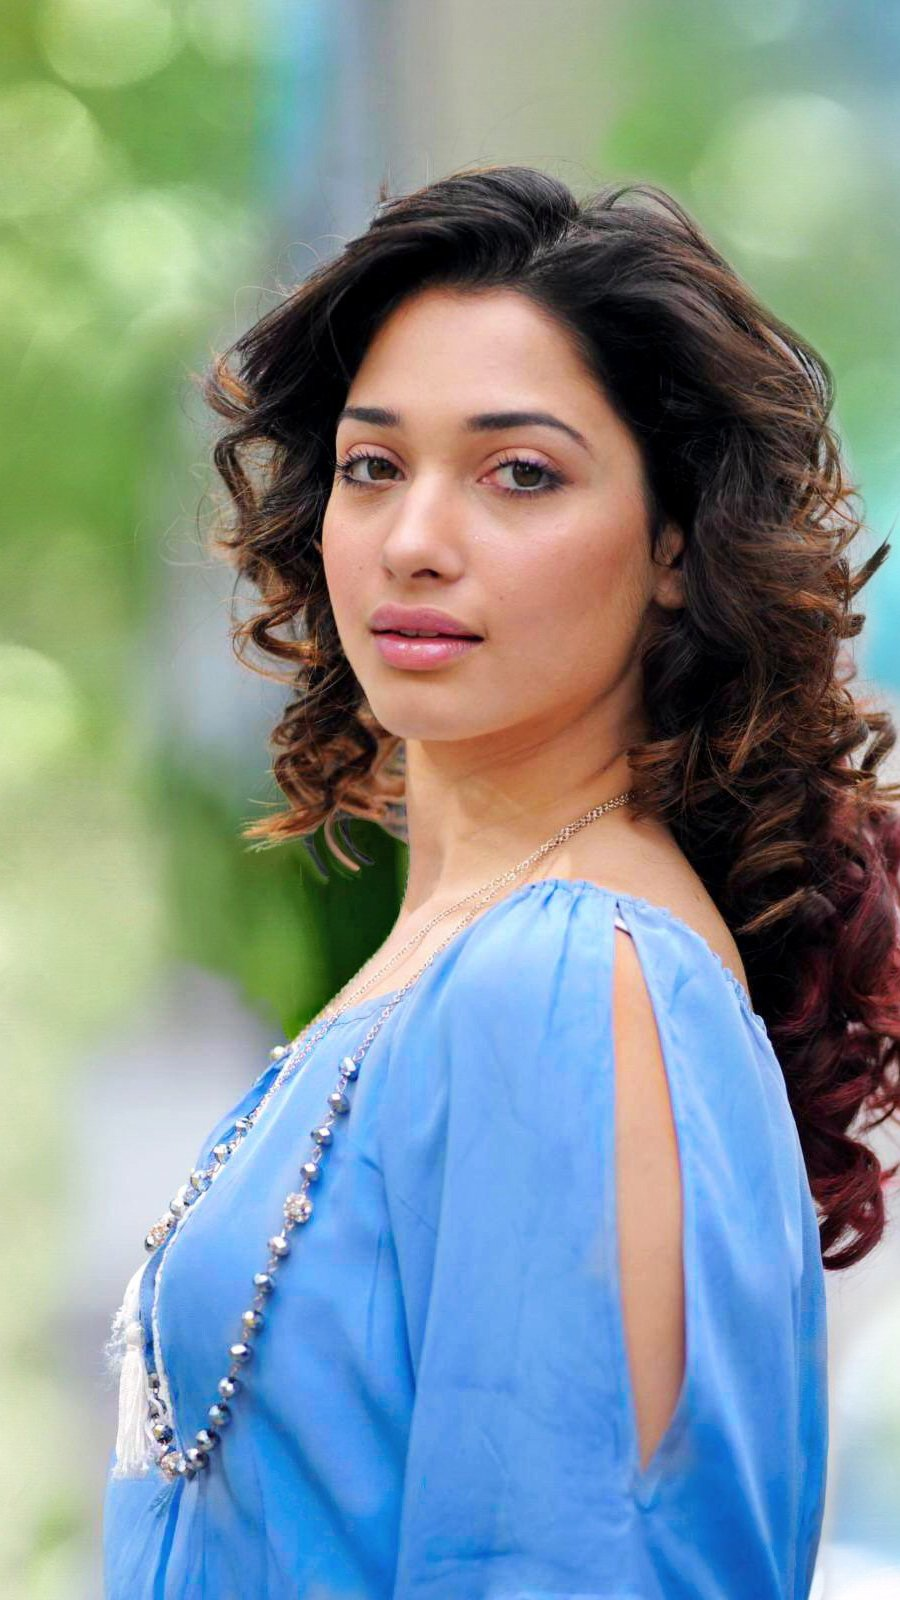 Wallpaper Actress Tamanna Bhatia Vertical